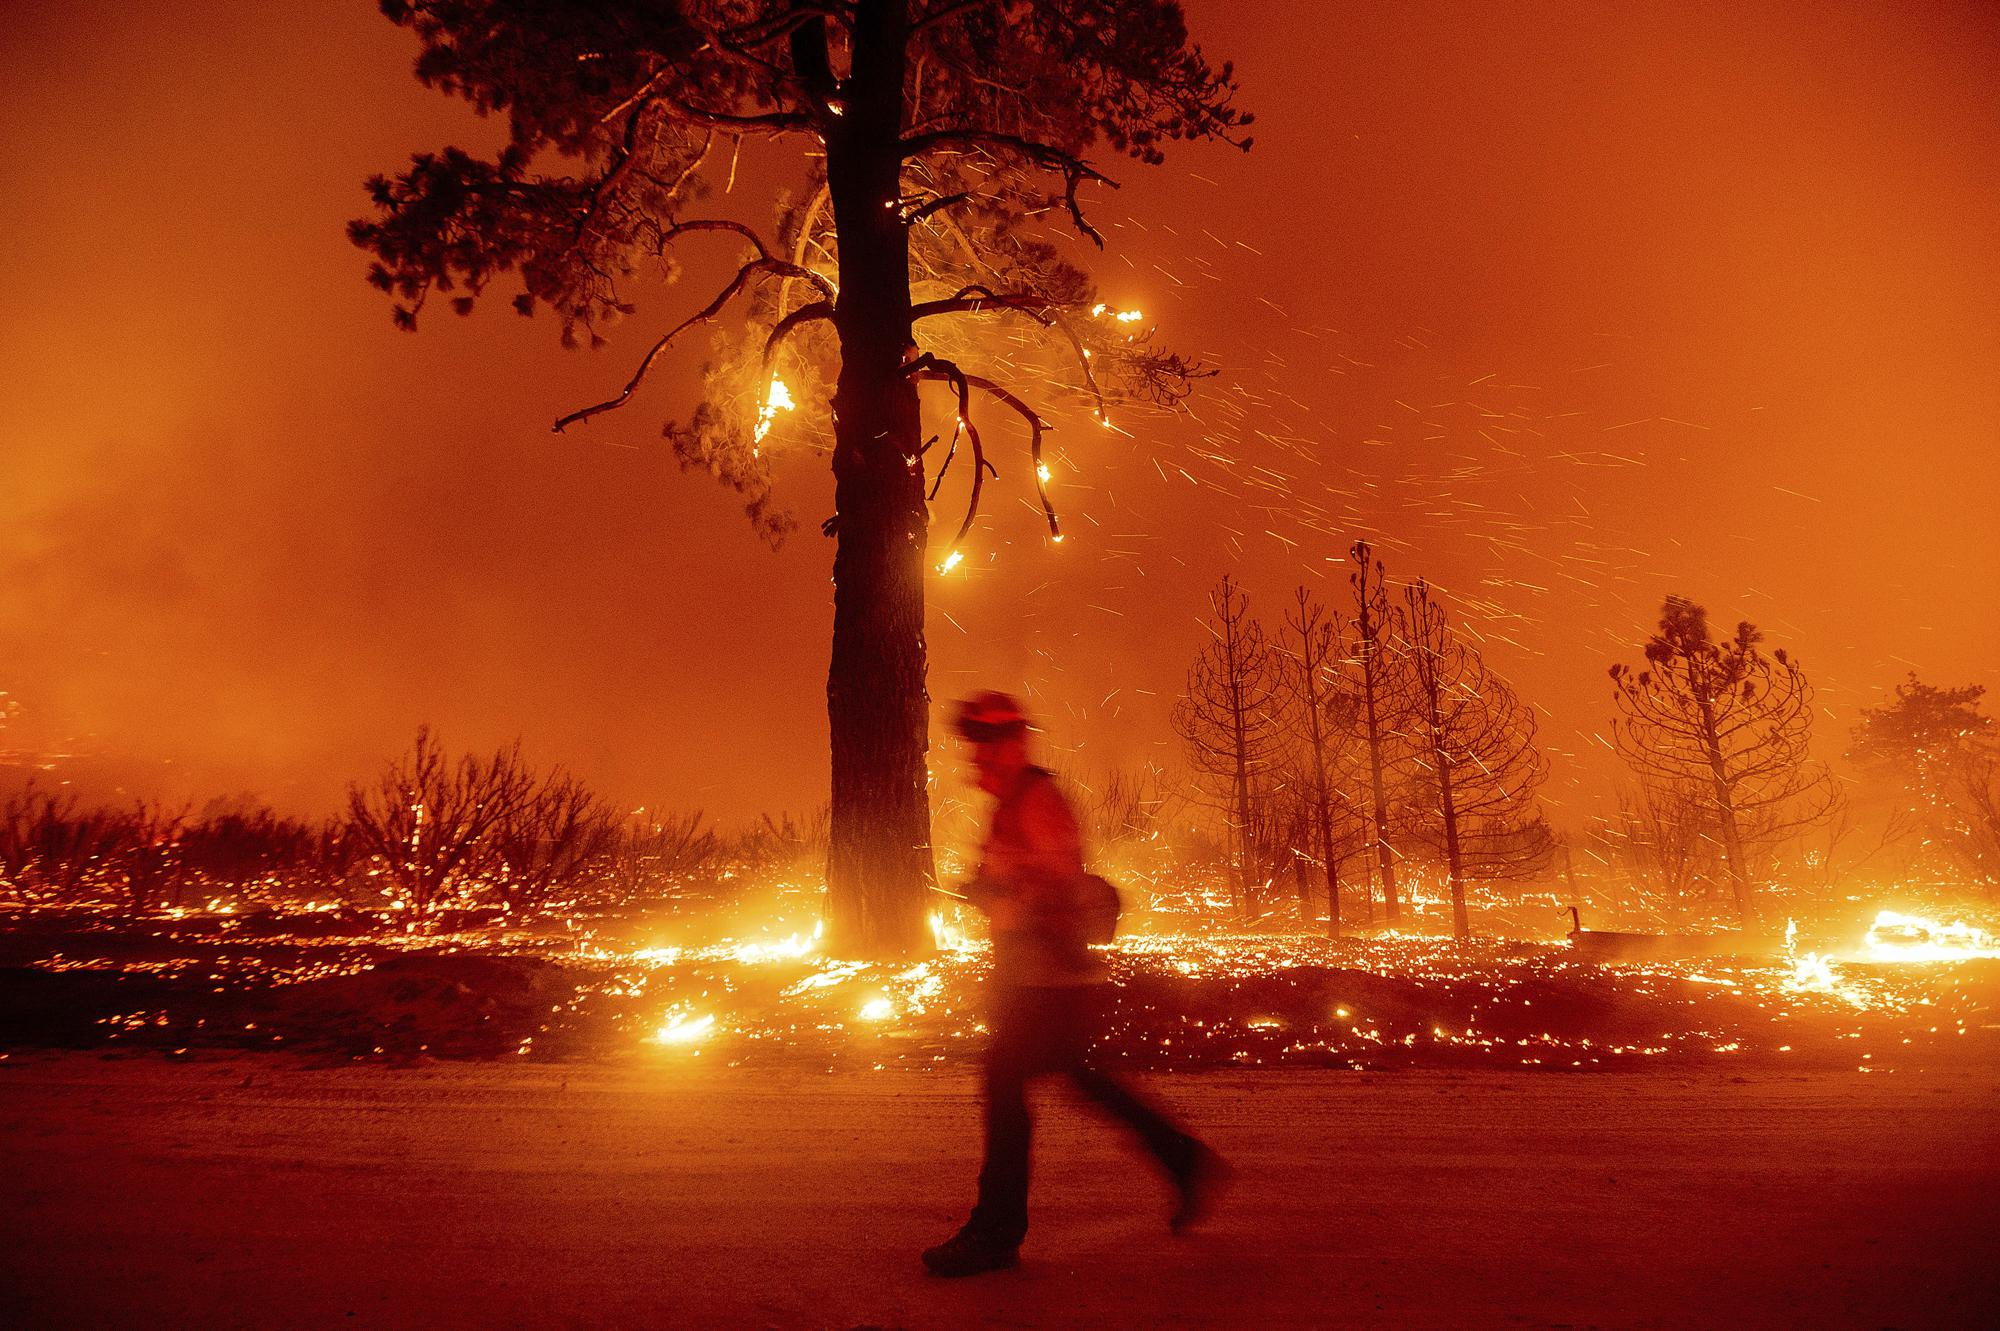 A firefighter battles the Dixie Fire shortly after it jumped Highway 395 south of Janesville in Lassen County, Calif., on Monday, Aug. 16, 2021. (AP Photo/Noah Berger)